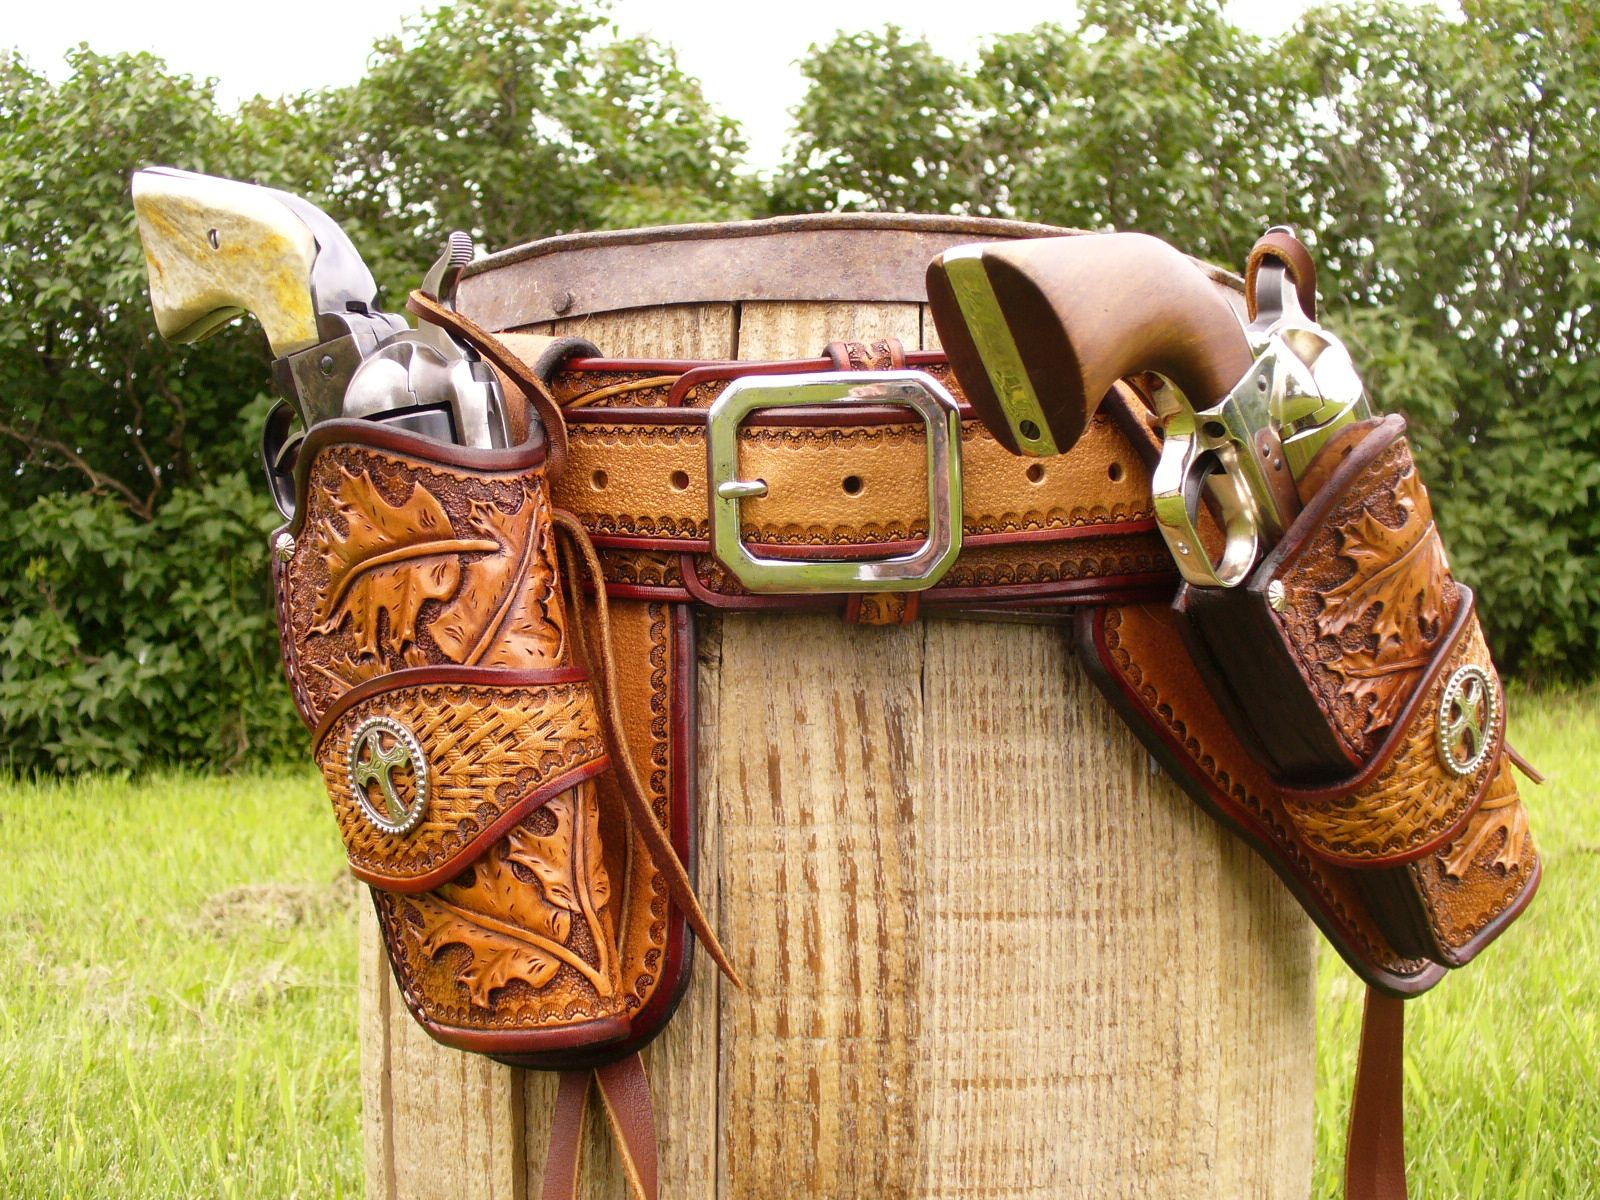 The leather shoulder holsters that fit you